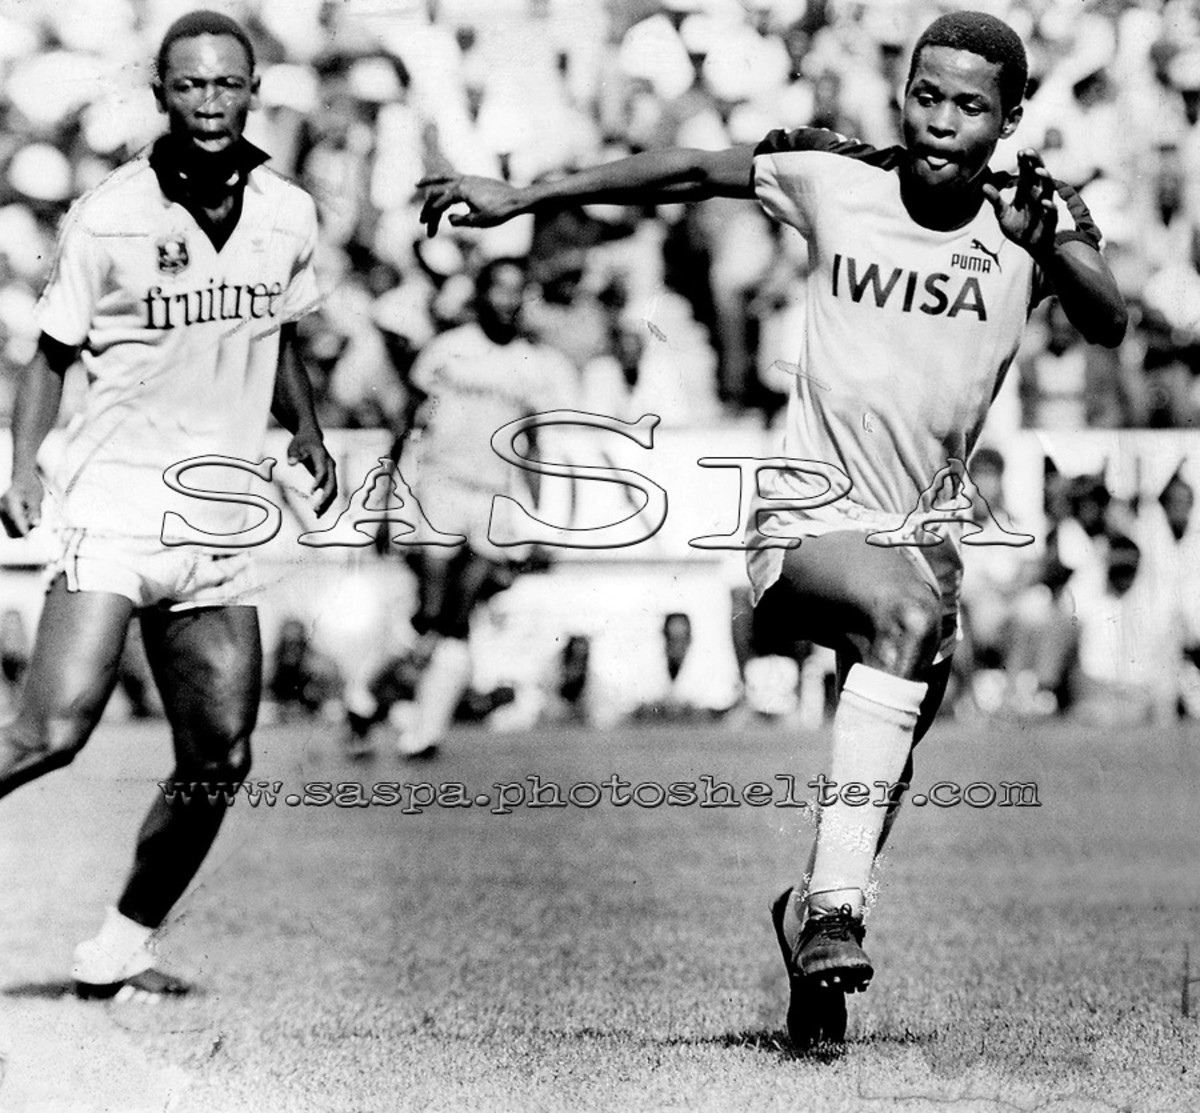 One of the most nimble and fleet footed striker and dribbler of the Golden Era of south African soccer